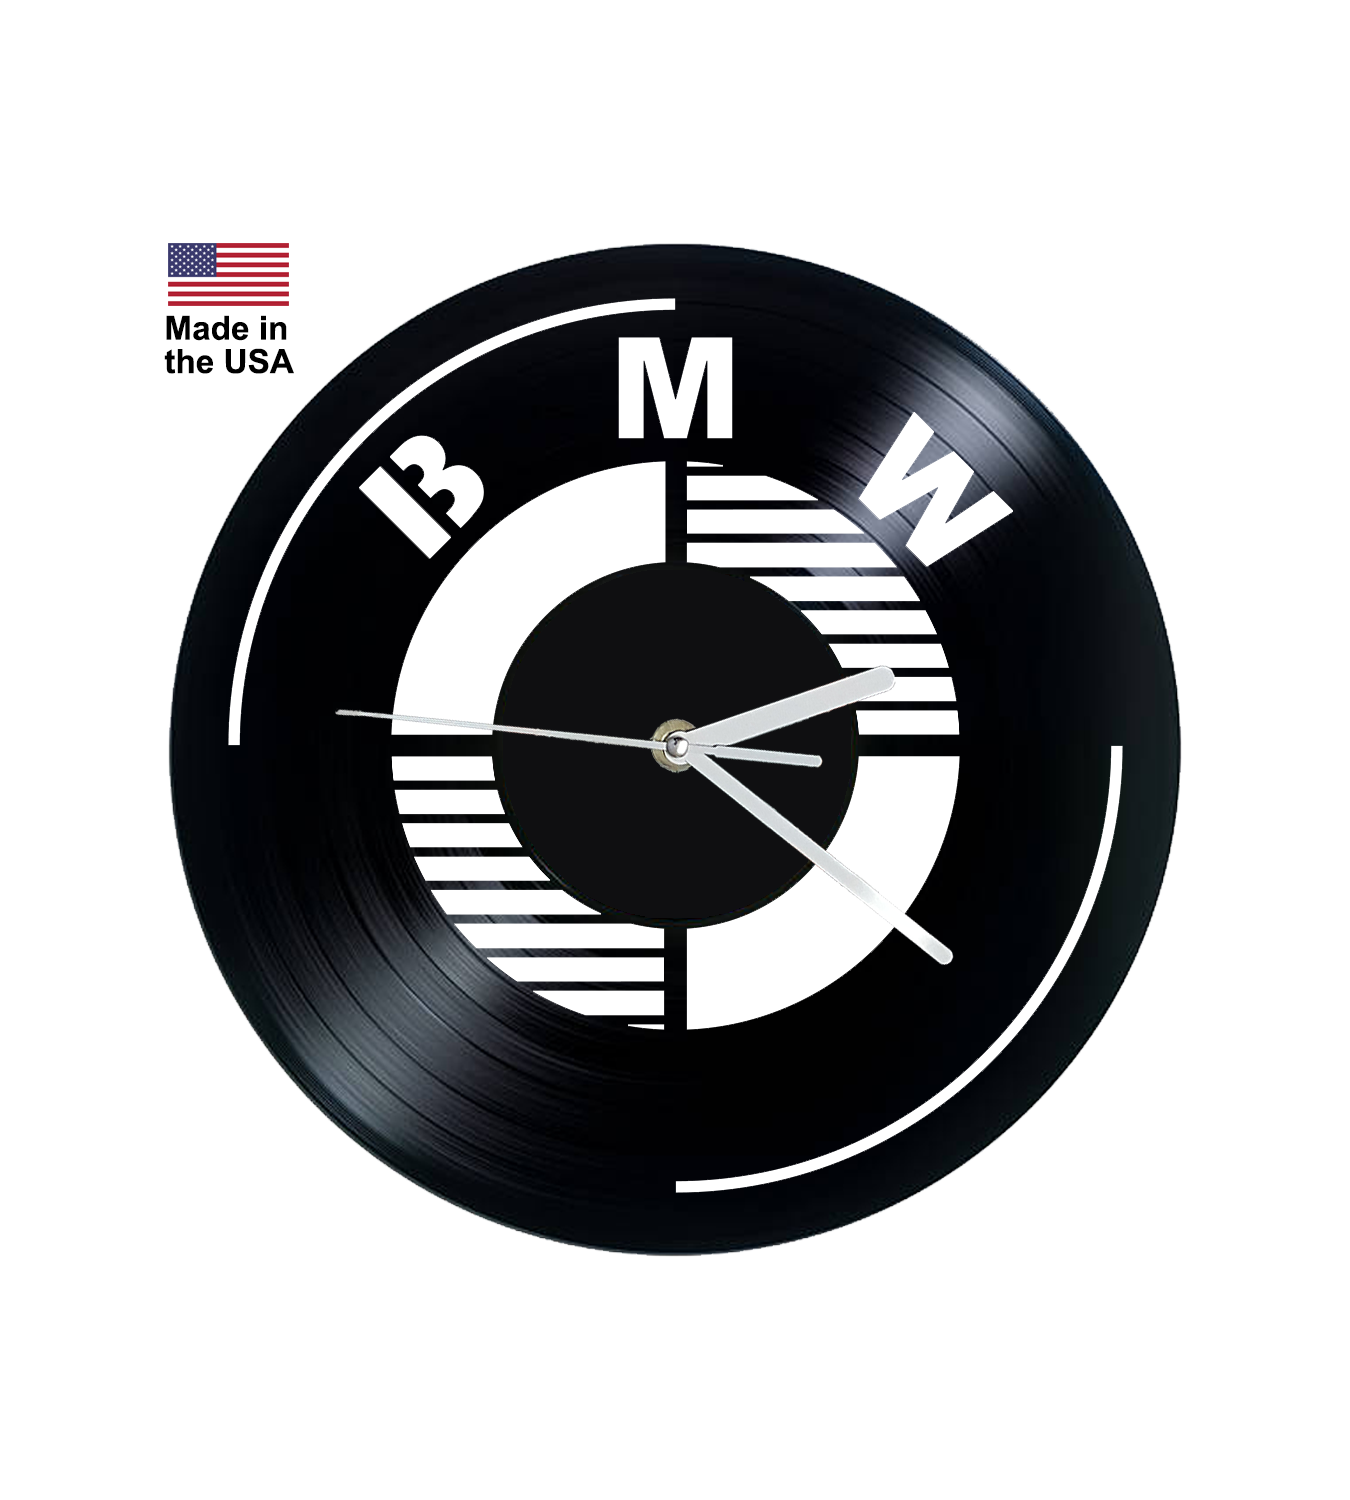 Vinyl Clock, BMW, Bavarian Motor Works, Wall clock, vinyl record clock